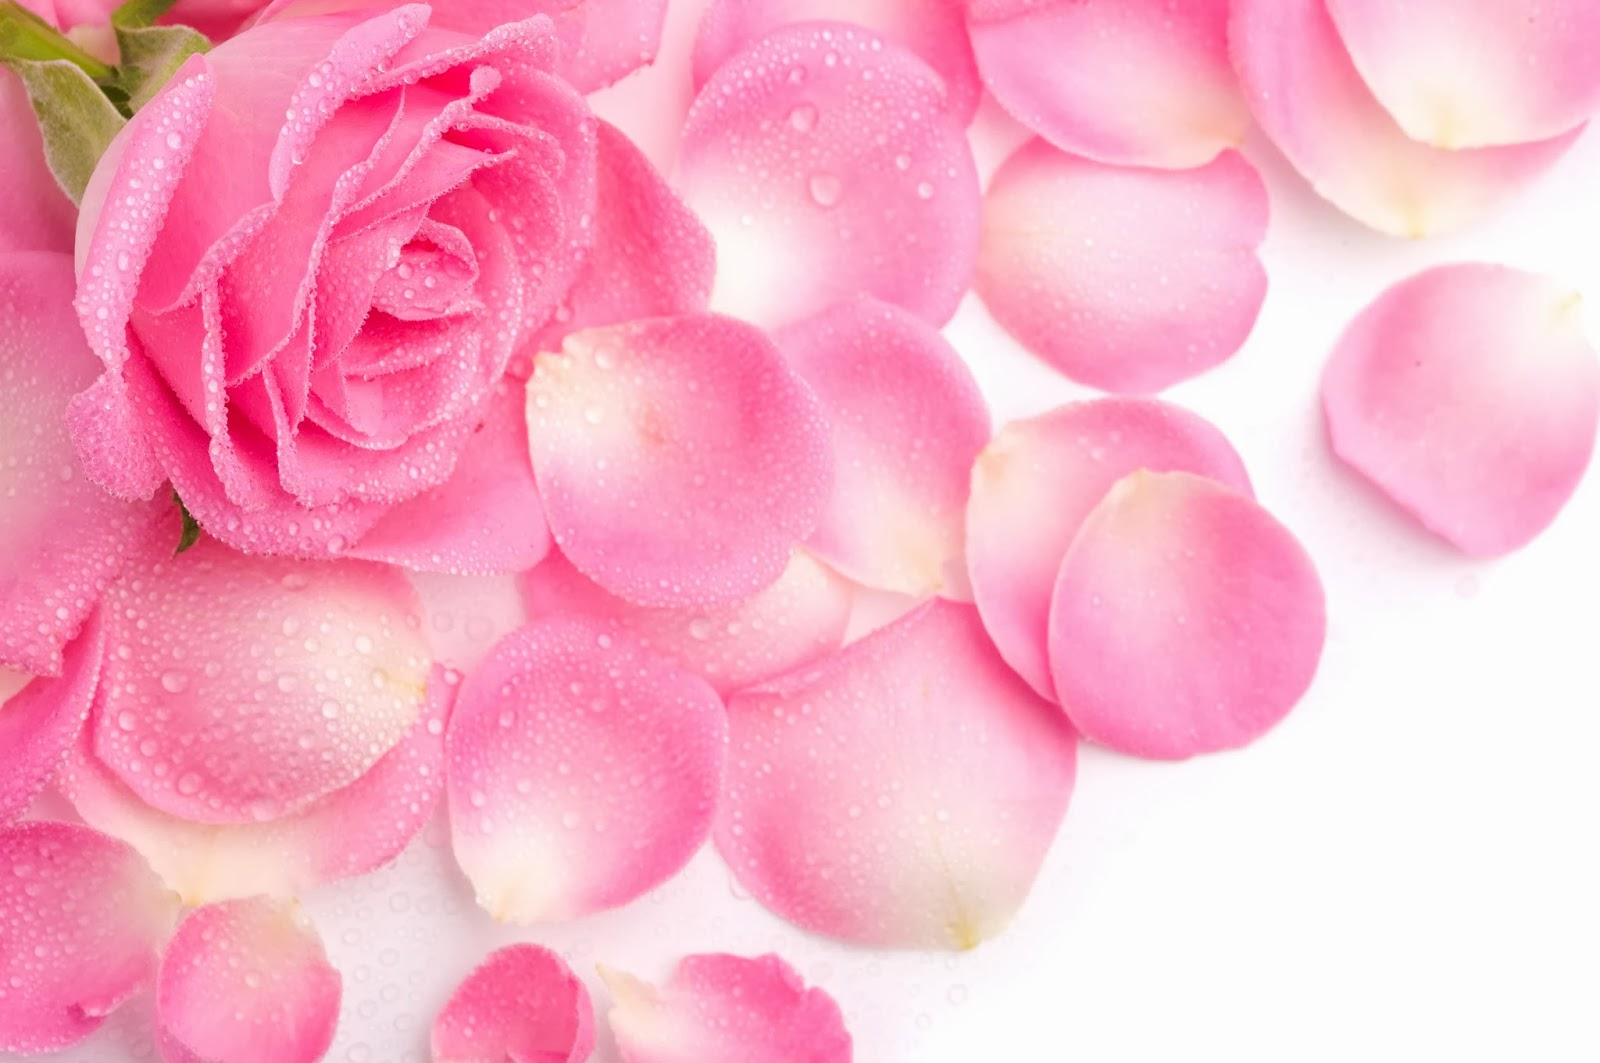 All 4u Hd Wallpaper Free Download Beautiful Pink Rose Wallpapers